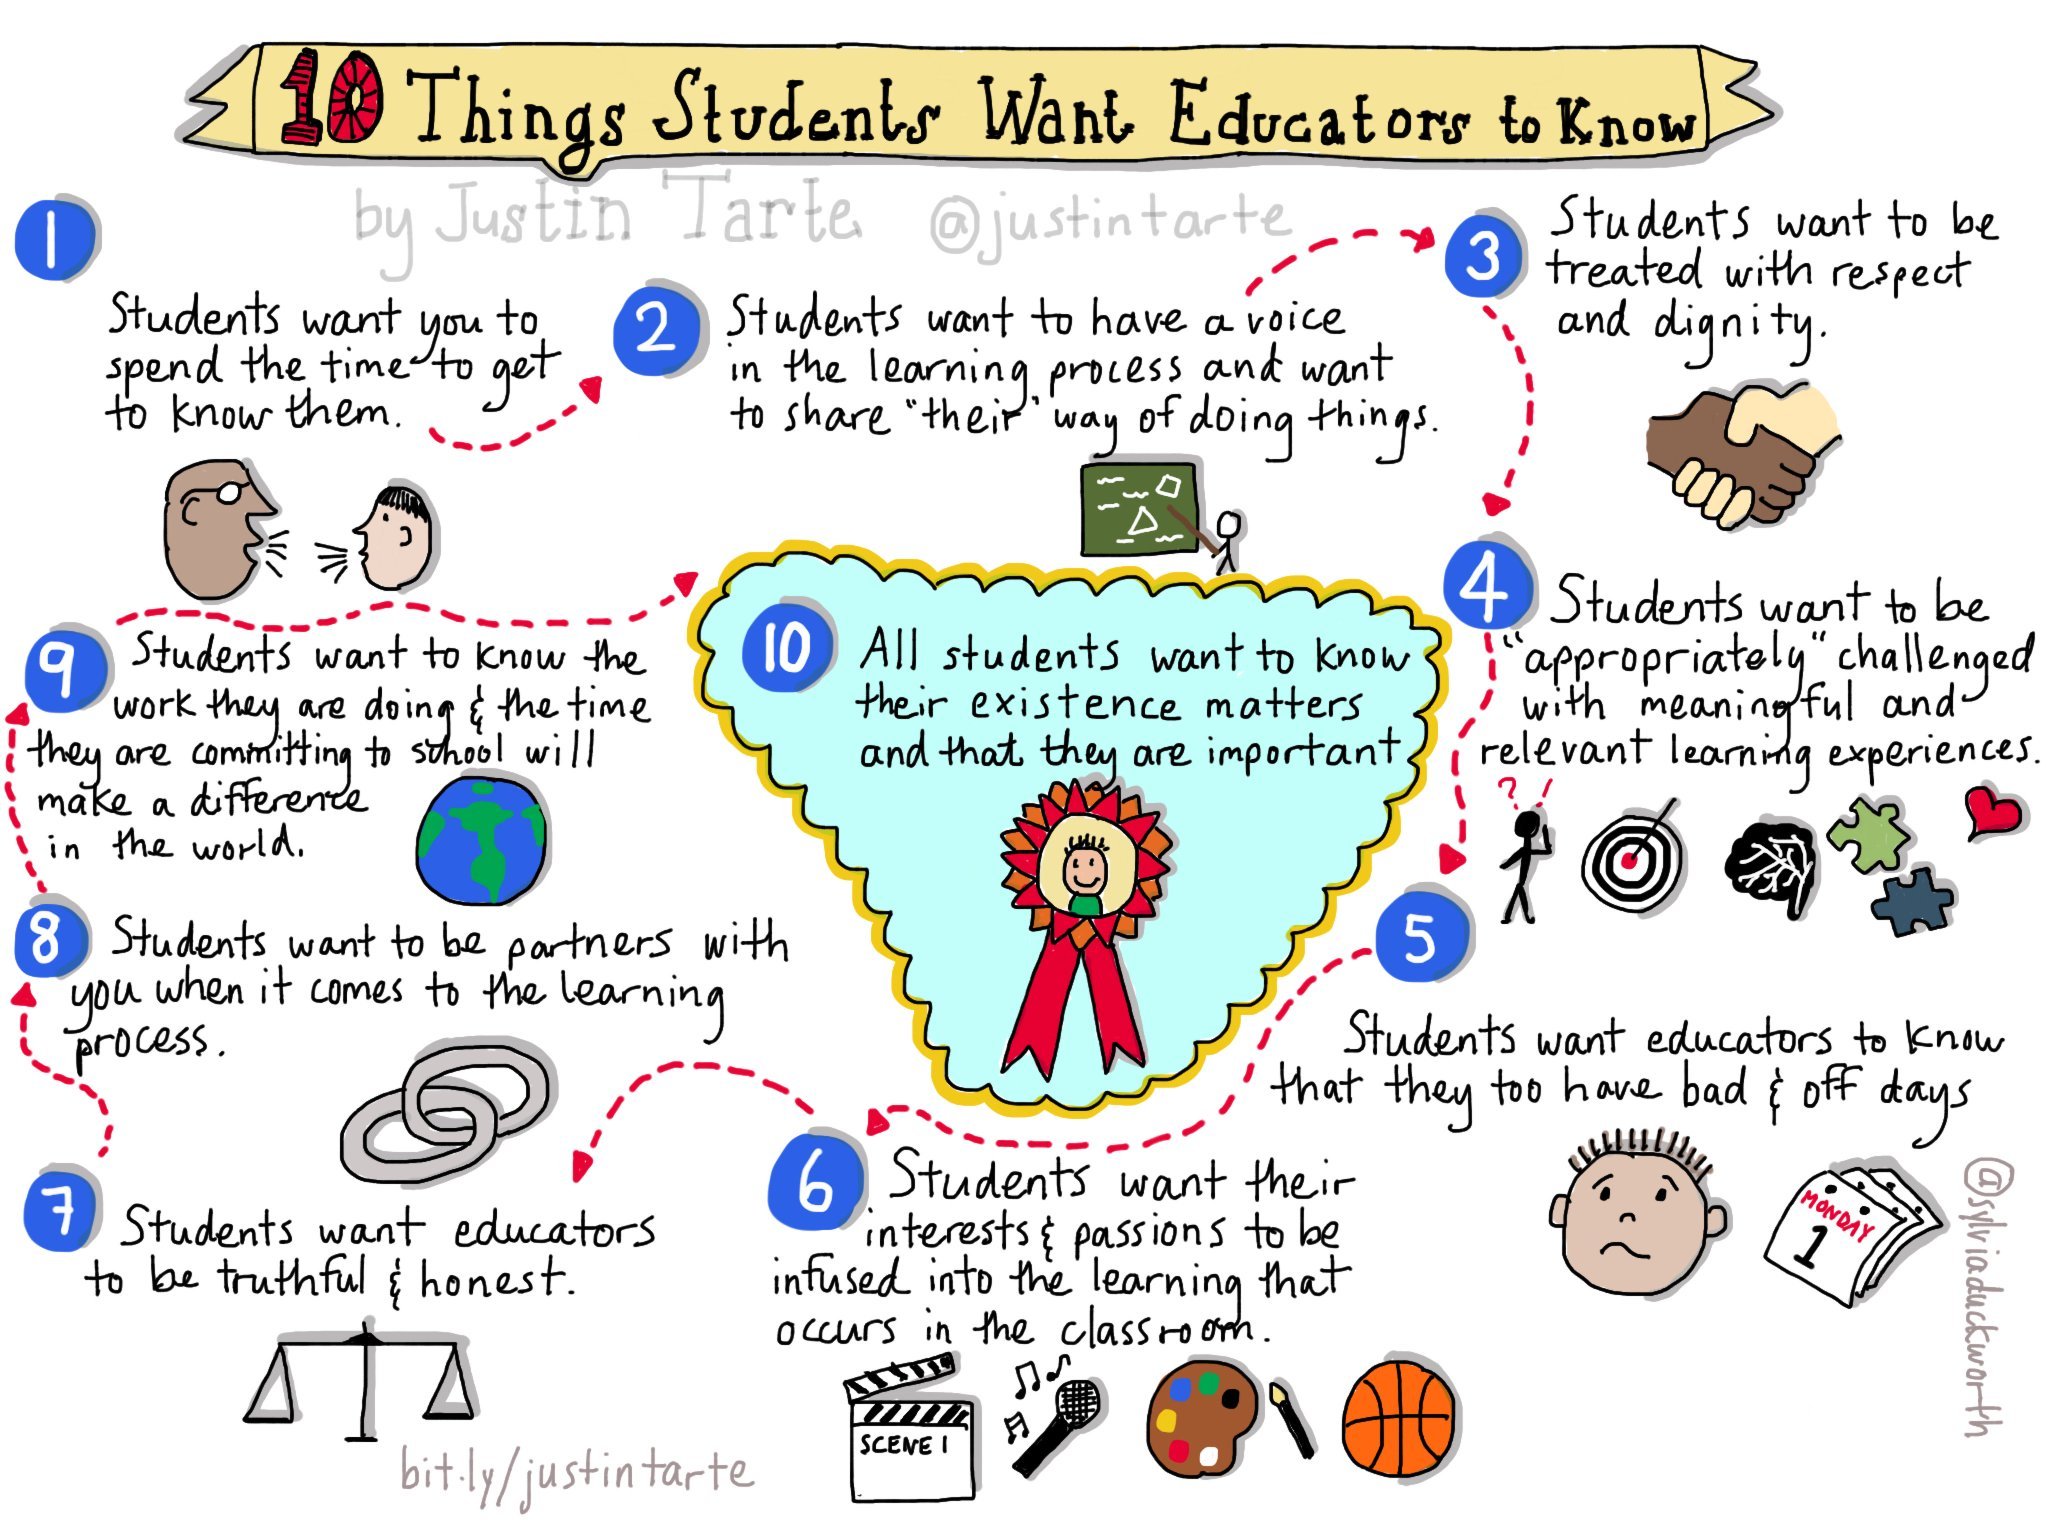 10 things students want their teachers and principals to know #sketchnote via @sylviaduckworth @justintarte #edchat #stuvoice #ntchat https://t.co/Zt18MneULS